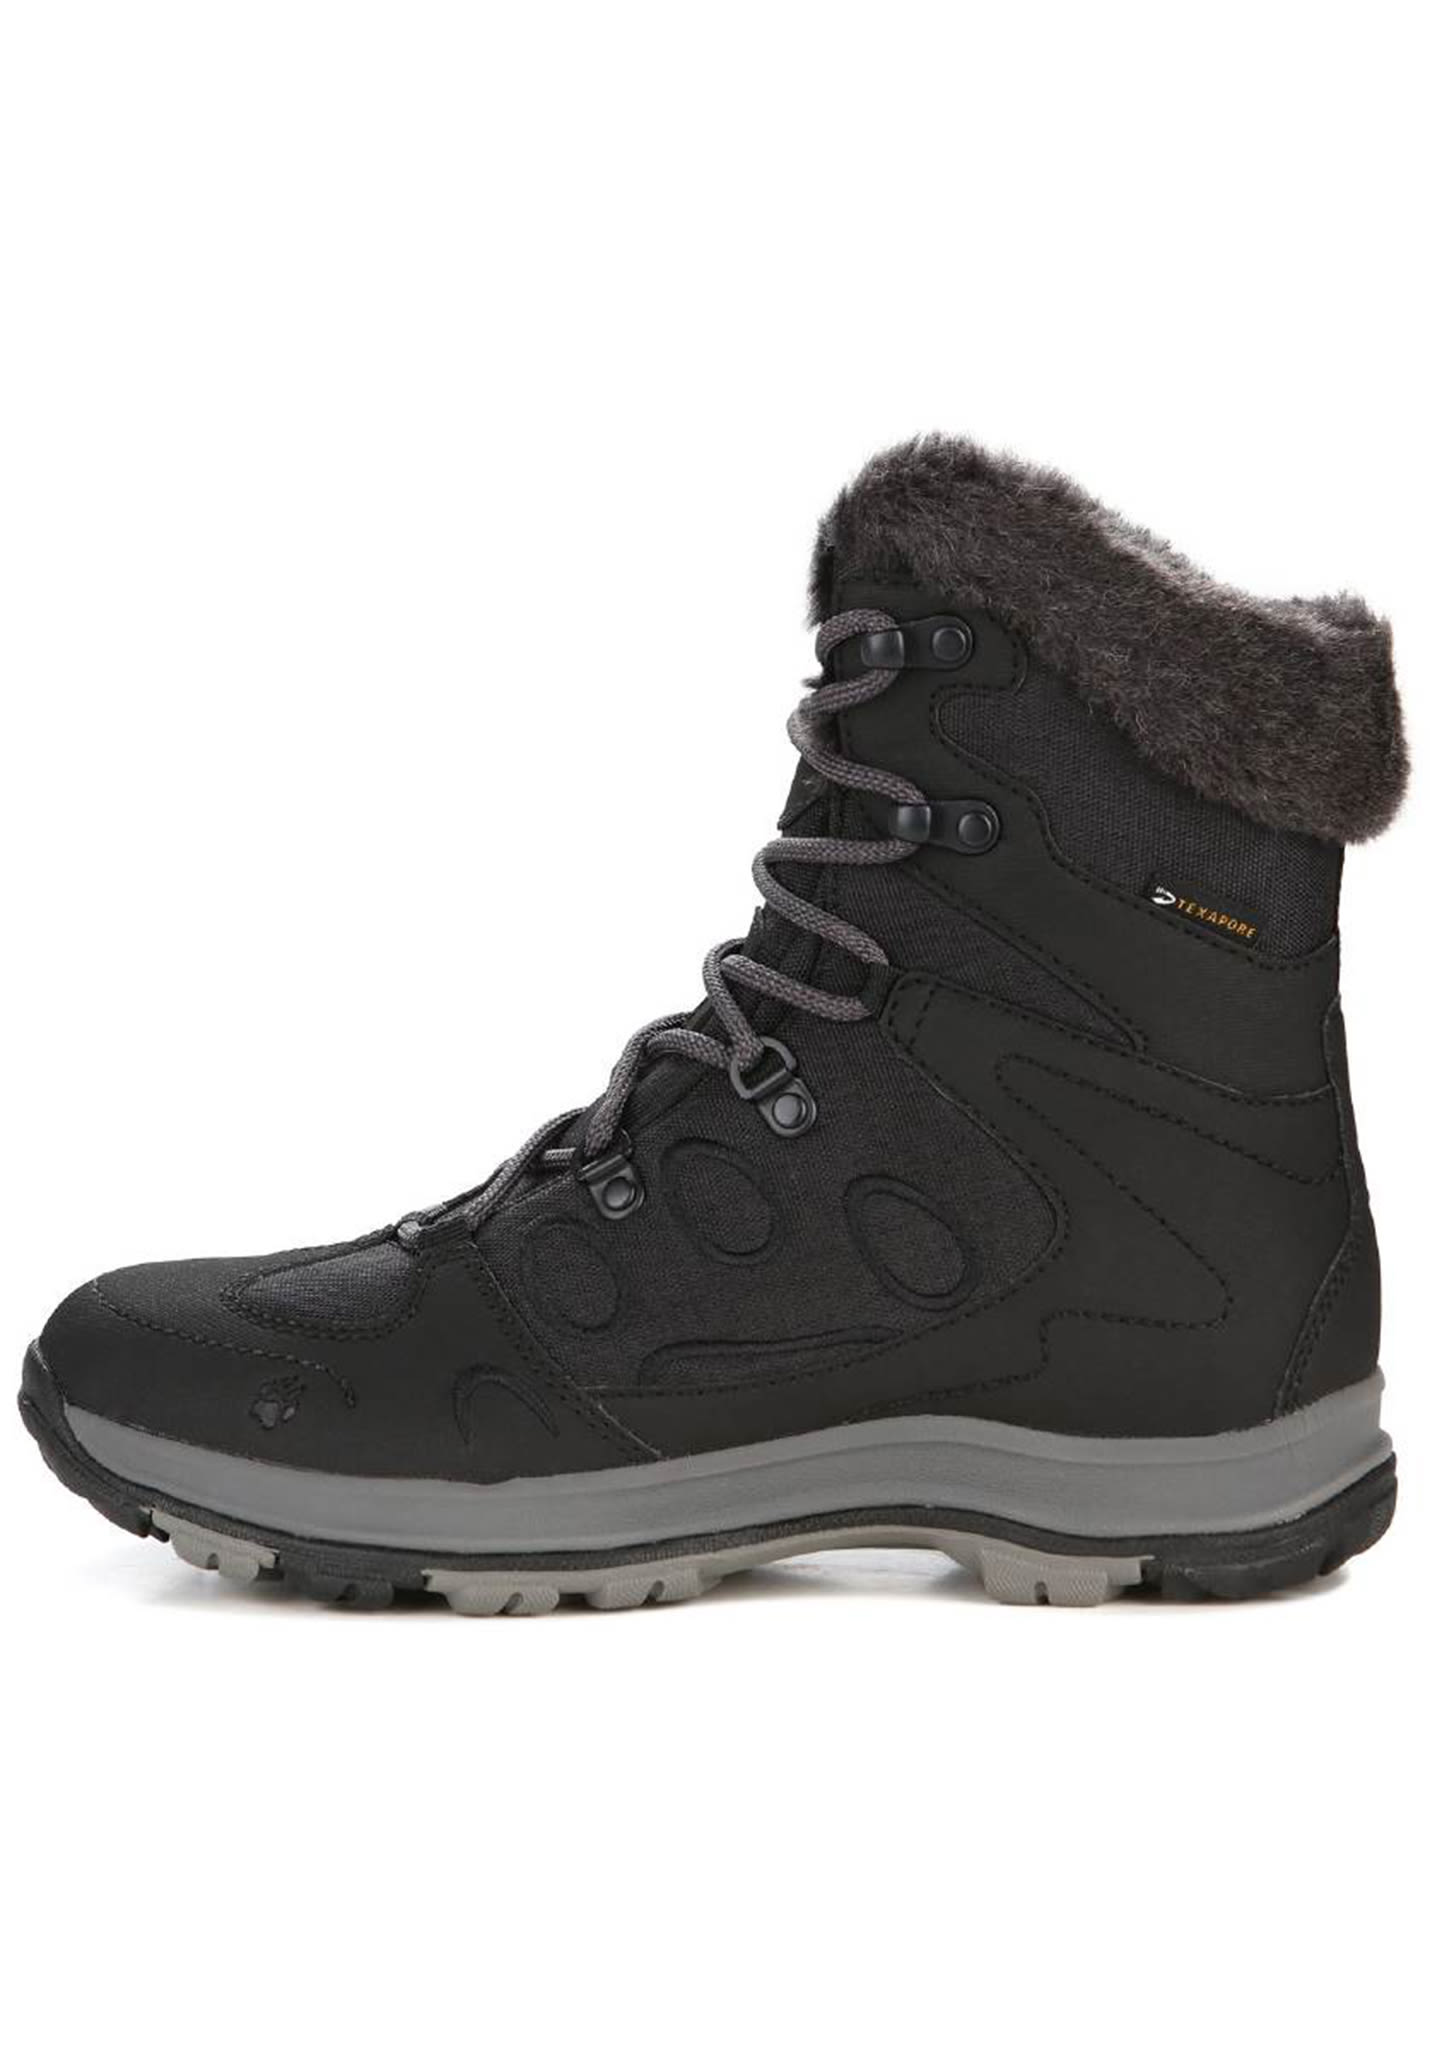 sports shoes 154d1 f5c47 Jack Wolfskin Thunder Bay Texapore Mid - Stiefel für Damen - Braun